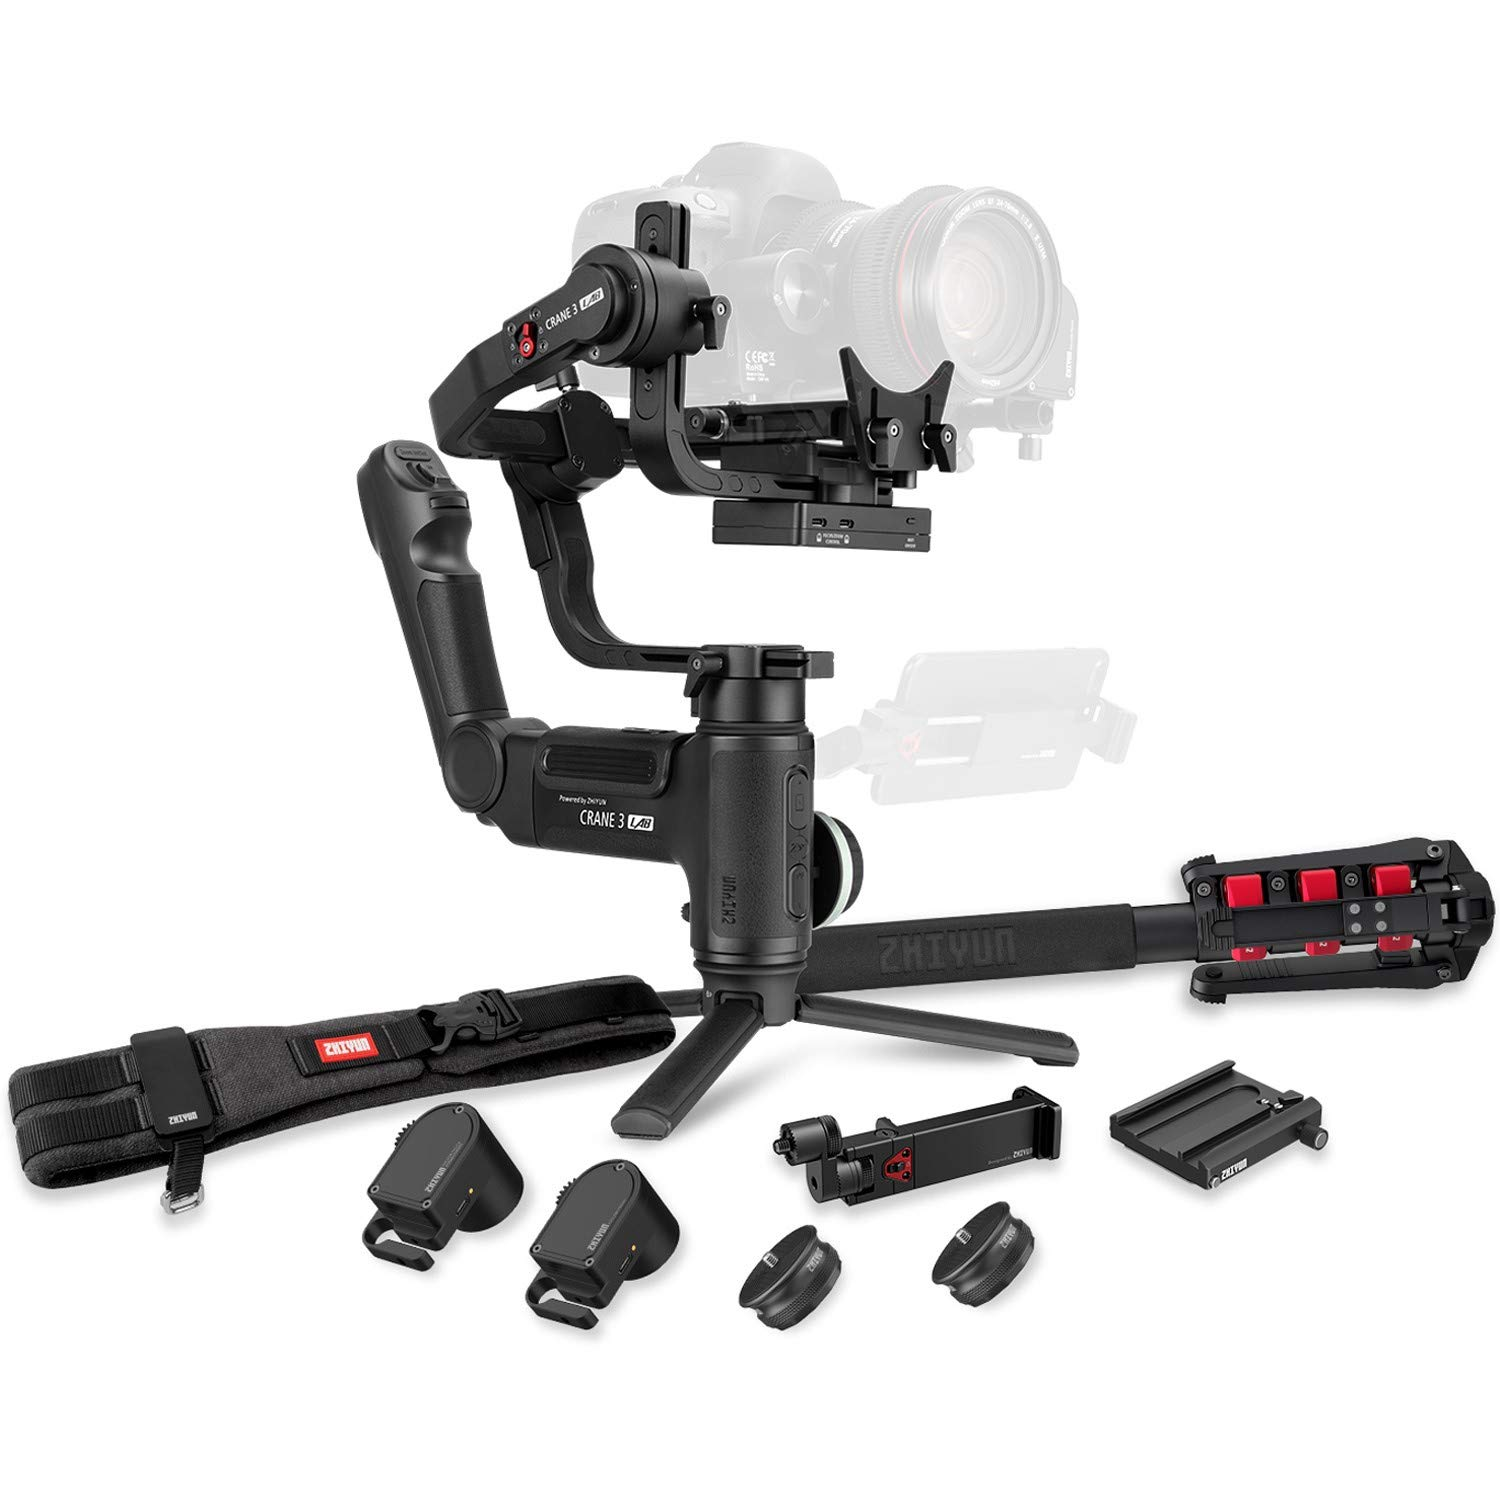 Zhiyun Crane 3 LAB 3-axis Handheld Gimbal Stabilizer for DSLR/Mirrorless Camera Sony Canon Panasonic Nikon(Creator Package - with Phone Holder,Zoom/Focus Motor, Camera Belt, Quick Setup kit, monopod)